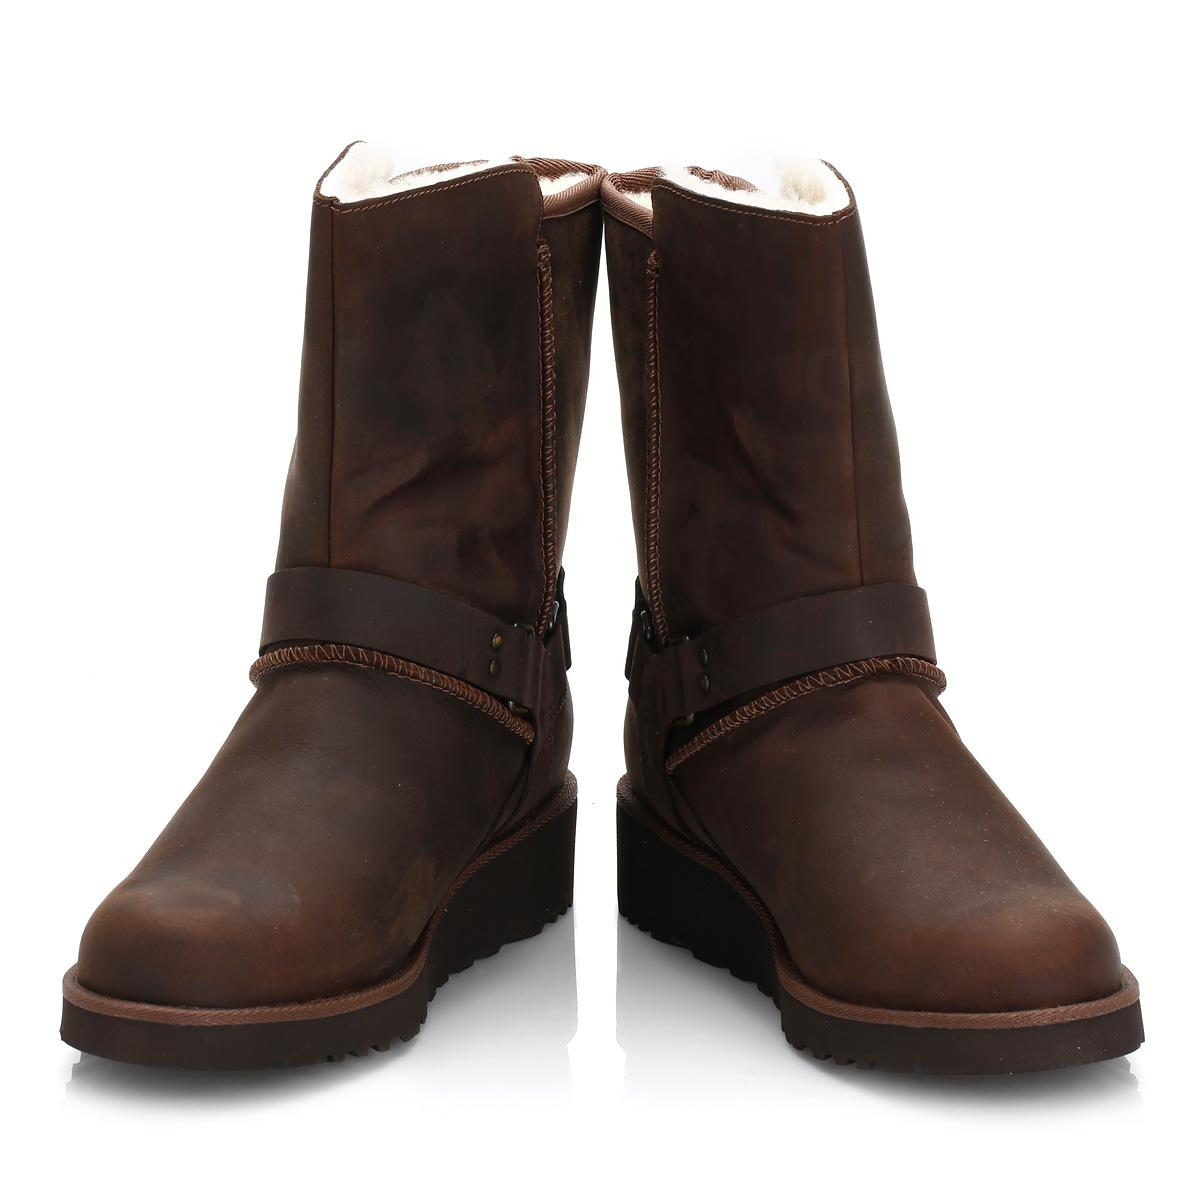 1b59ce2a151 Ugg Ugg Womens Chestnut Brown Maddox Leather Boots